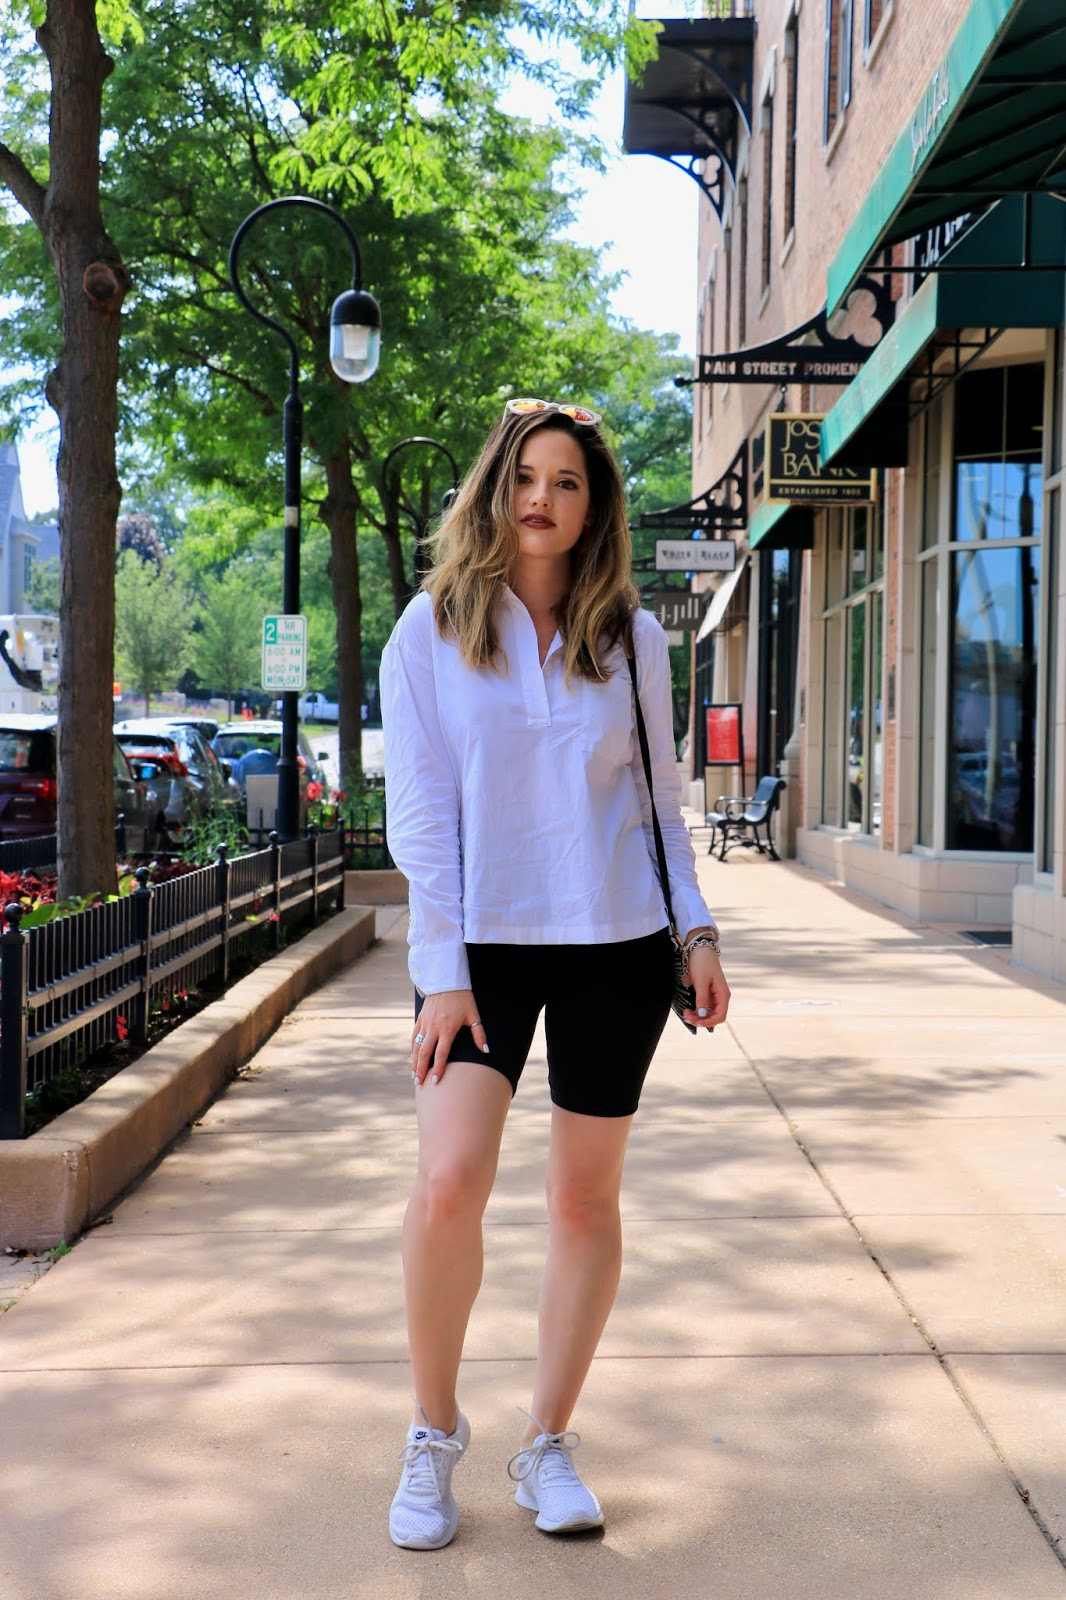 Nyc fashion blogger Kathleen Harper wearing a bike shorts outfit.